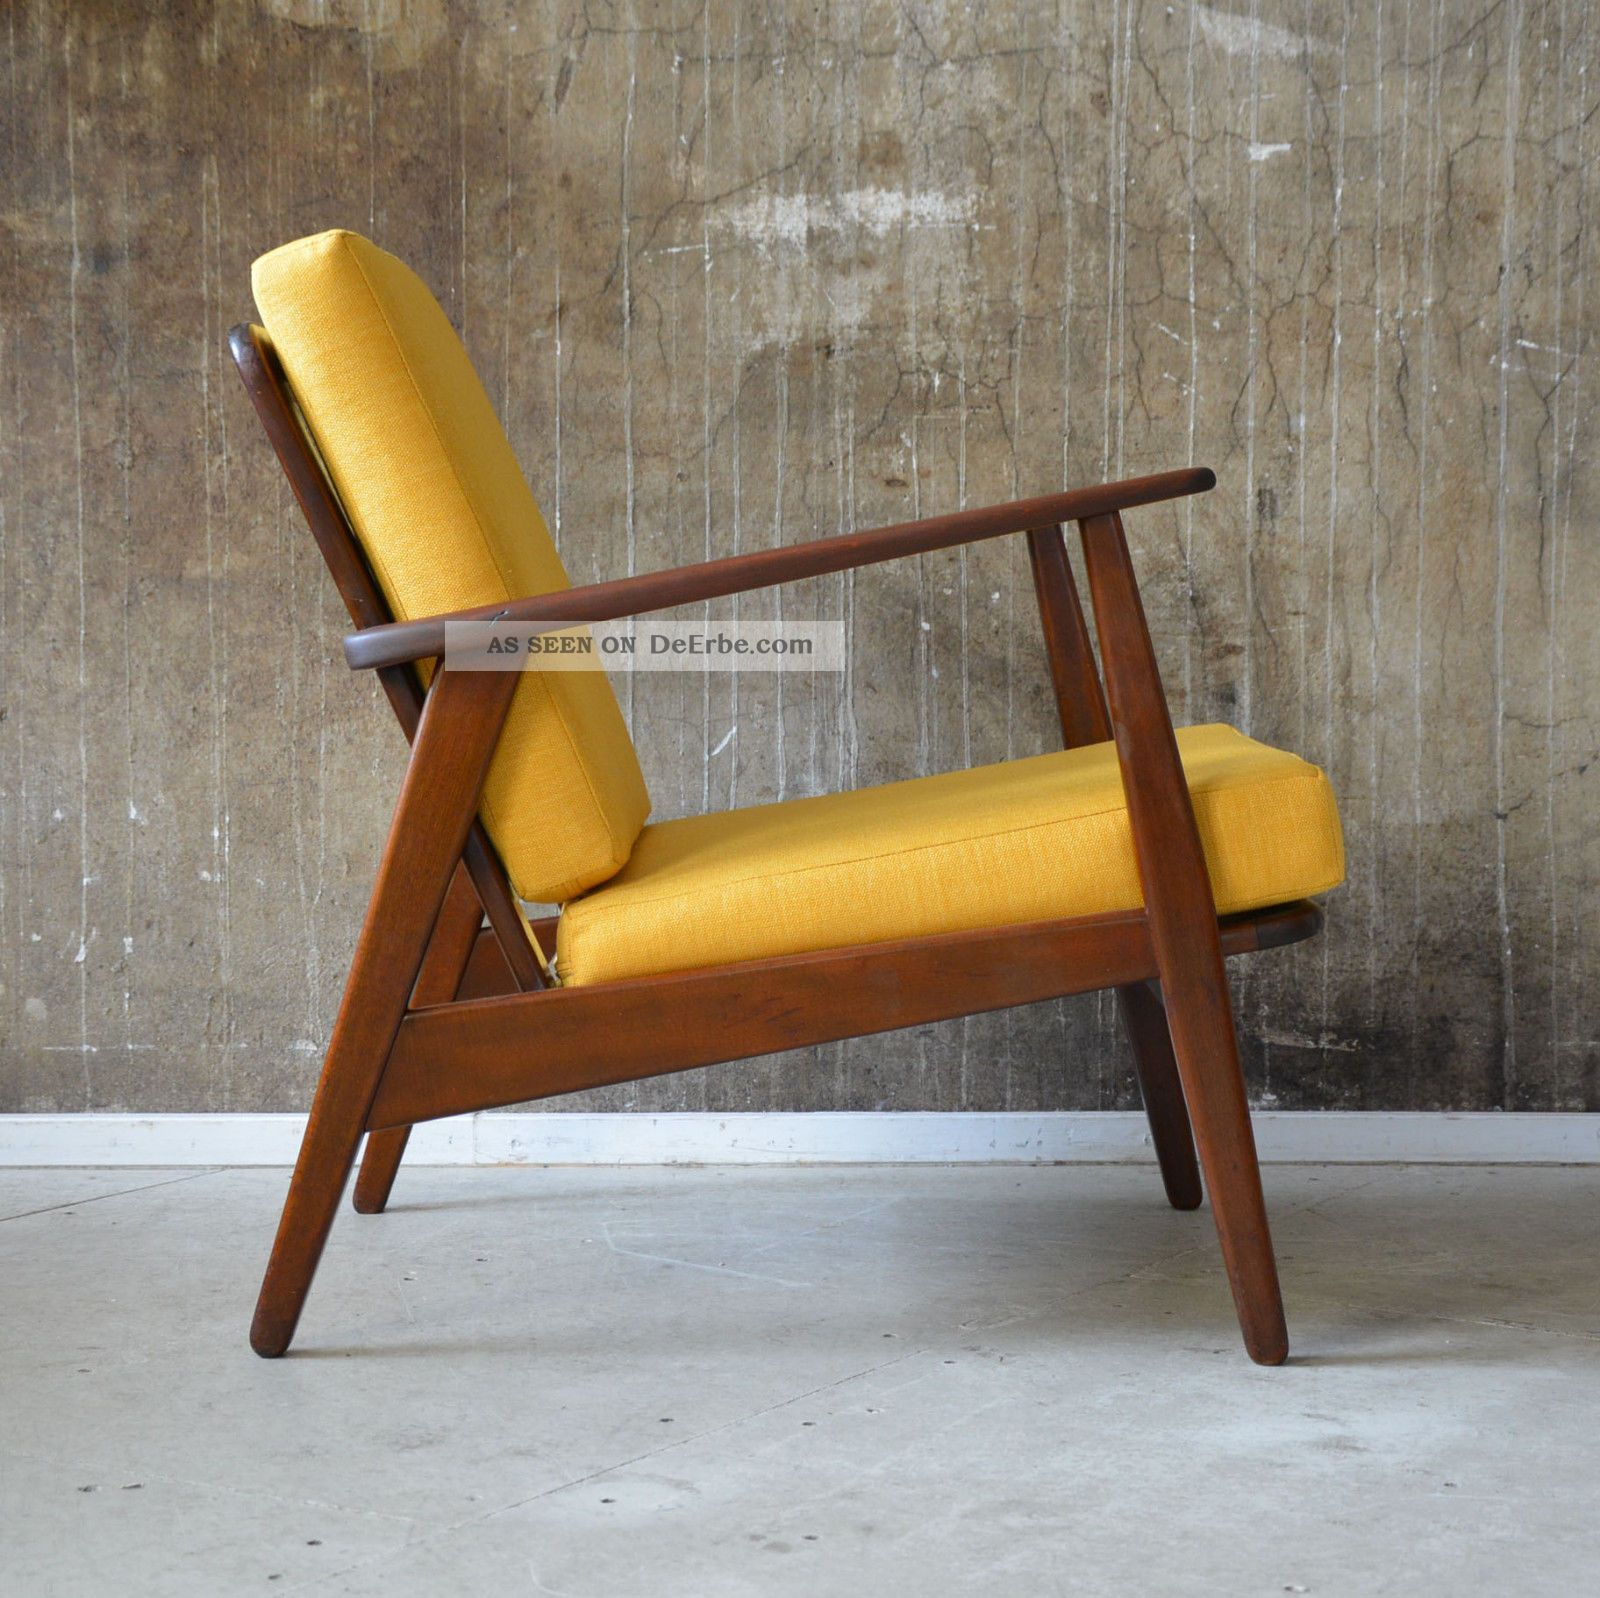 Lounge Sessel Gelb 60er Teak Sessel Danish Design 60s Easy Chair Vintage Midcentury